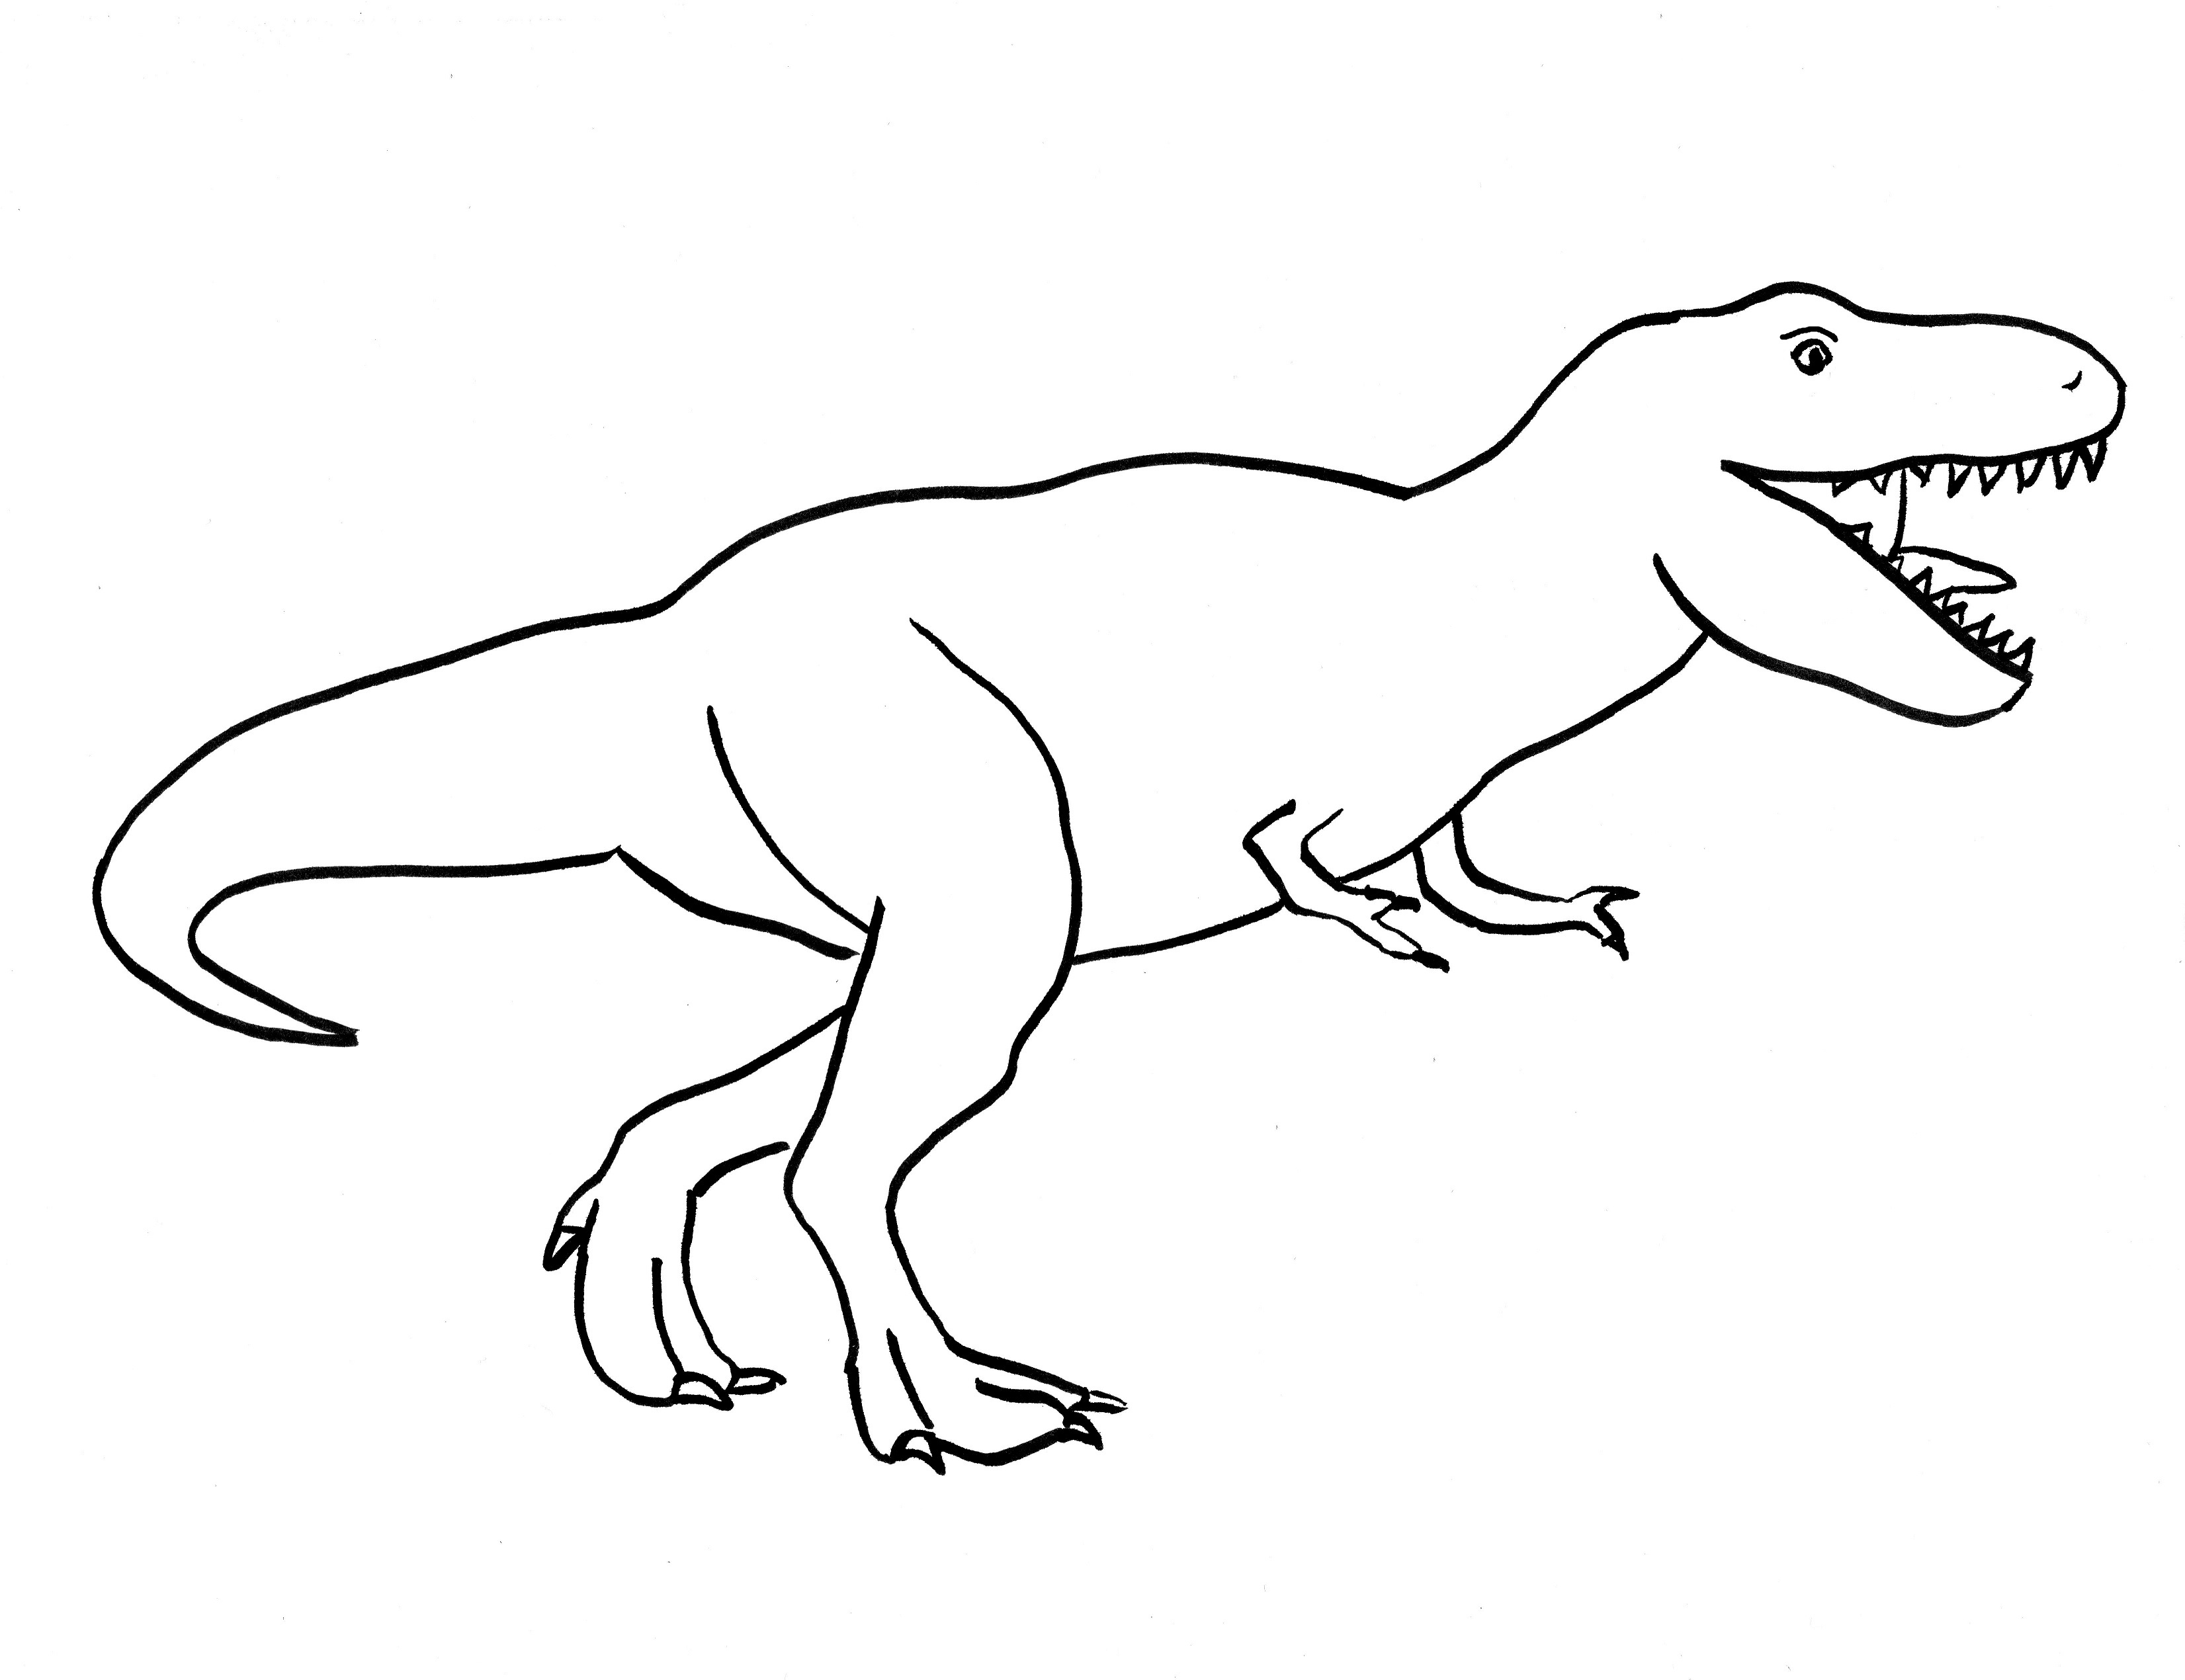 T rex drawing step by step art starts for kids